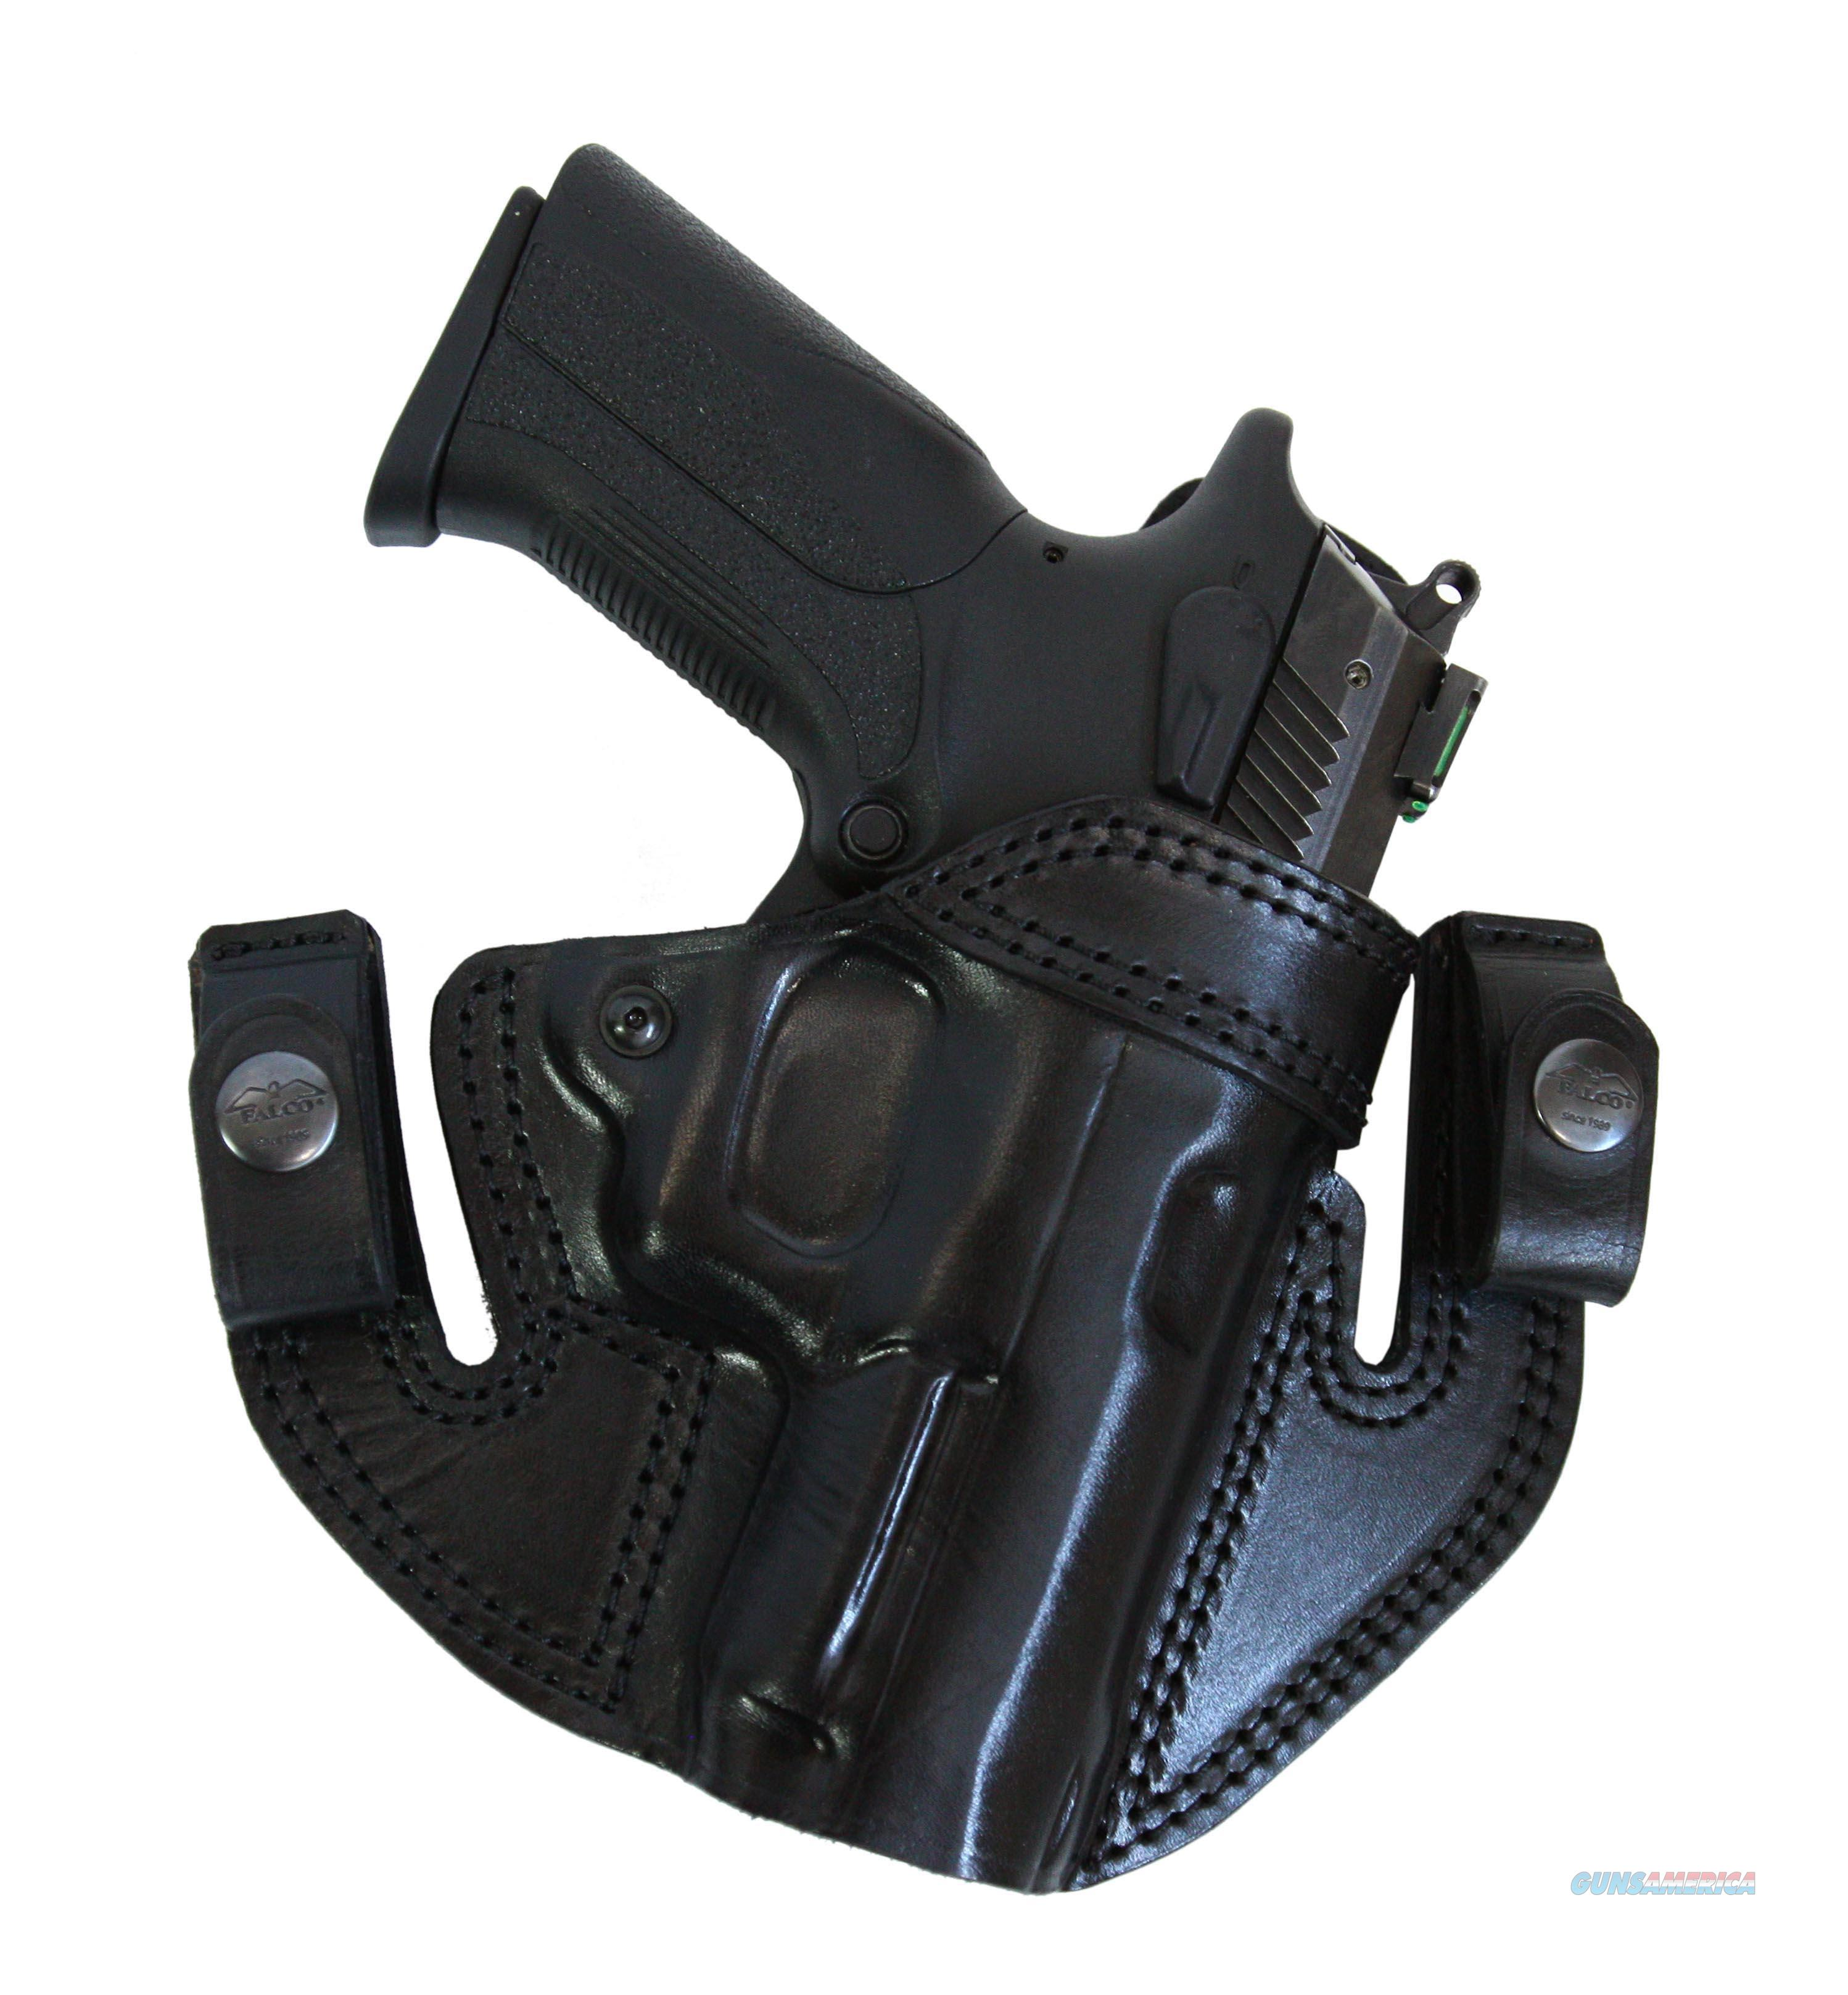 IWB / OWB Leather Gun Holster  Sig Sauer P2022  Non-Guns > Holsters and Gunleather > Concealed Carry